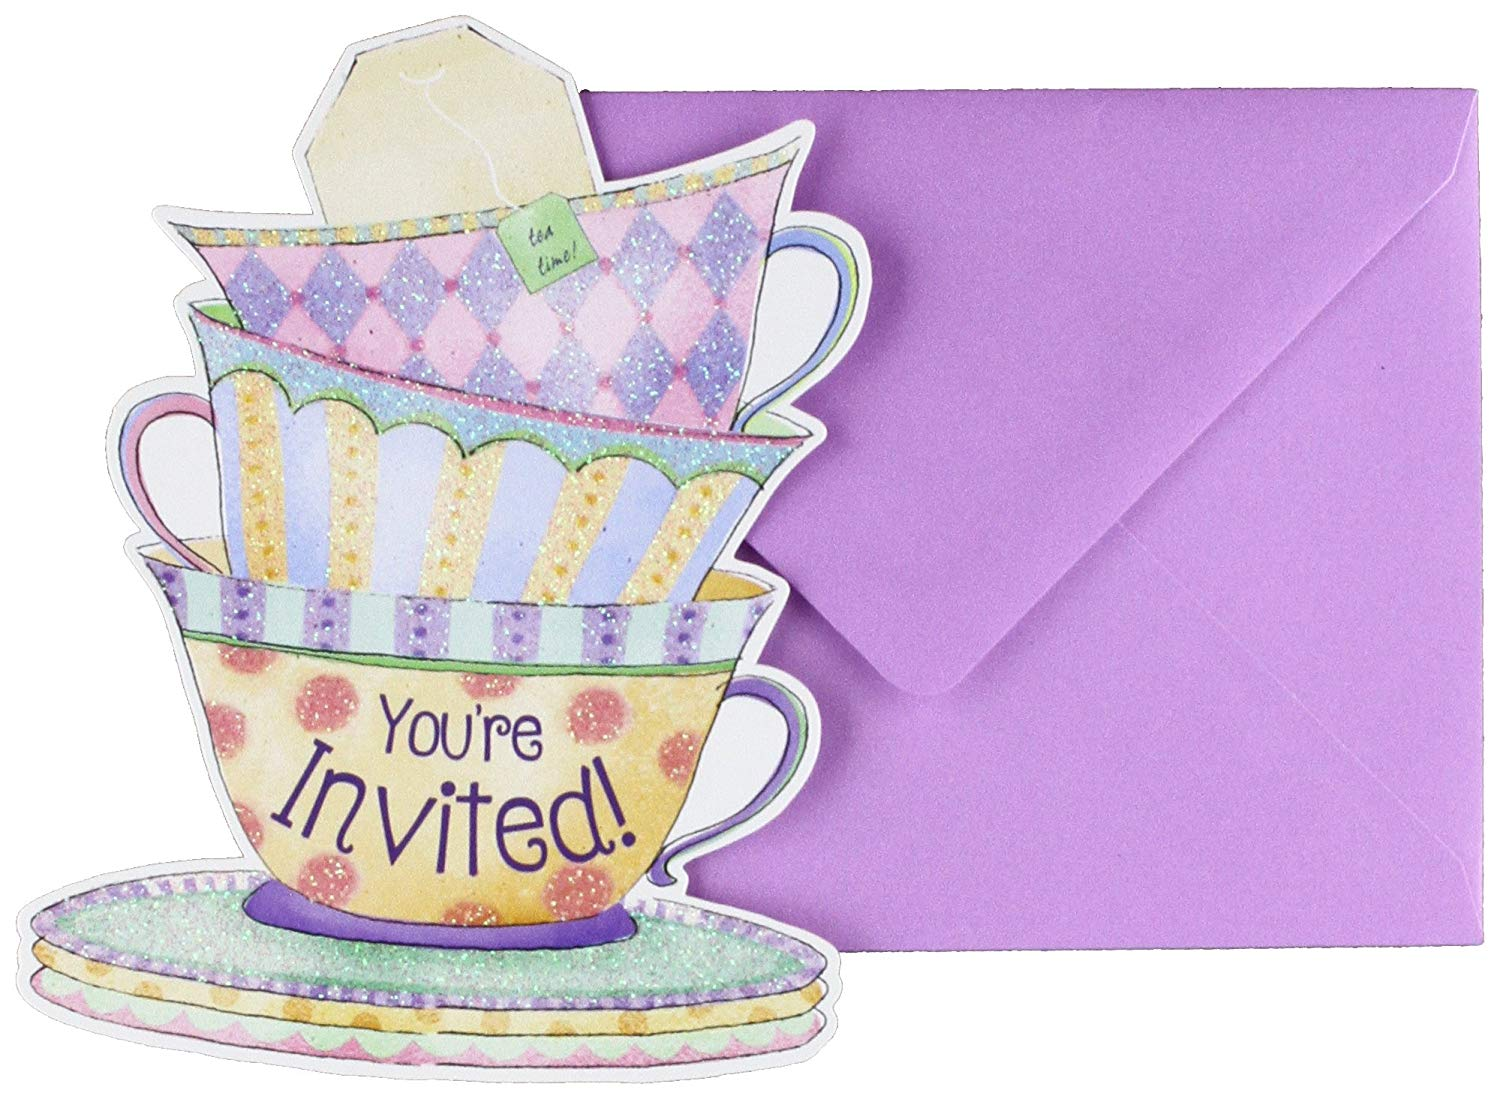 87cc198be07 Get Quotations · Amscan 490140 Party Supplies Tea Cup Large Novelty  Invitations (8 Ct)